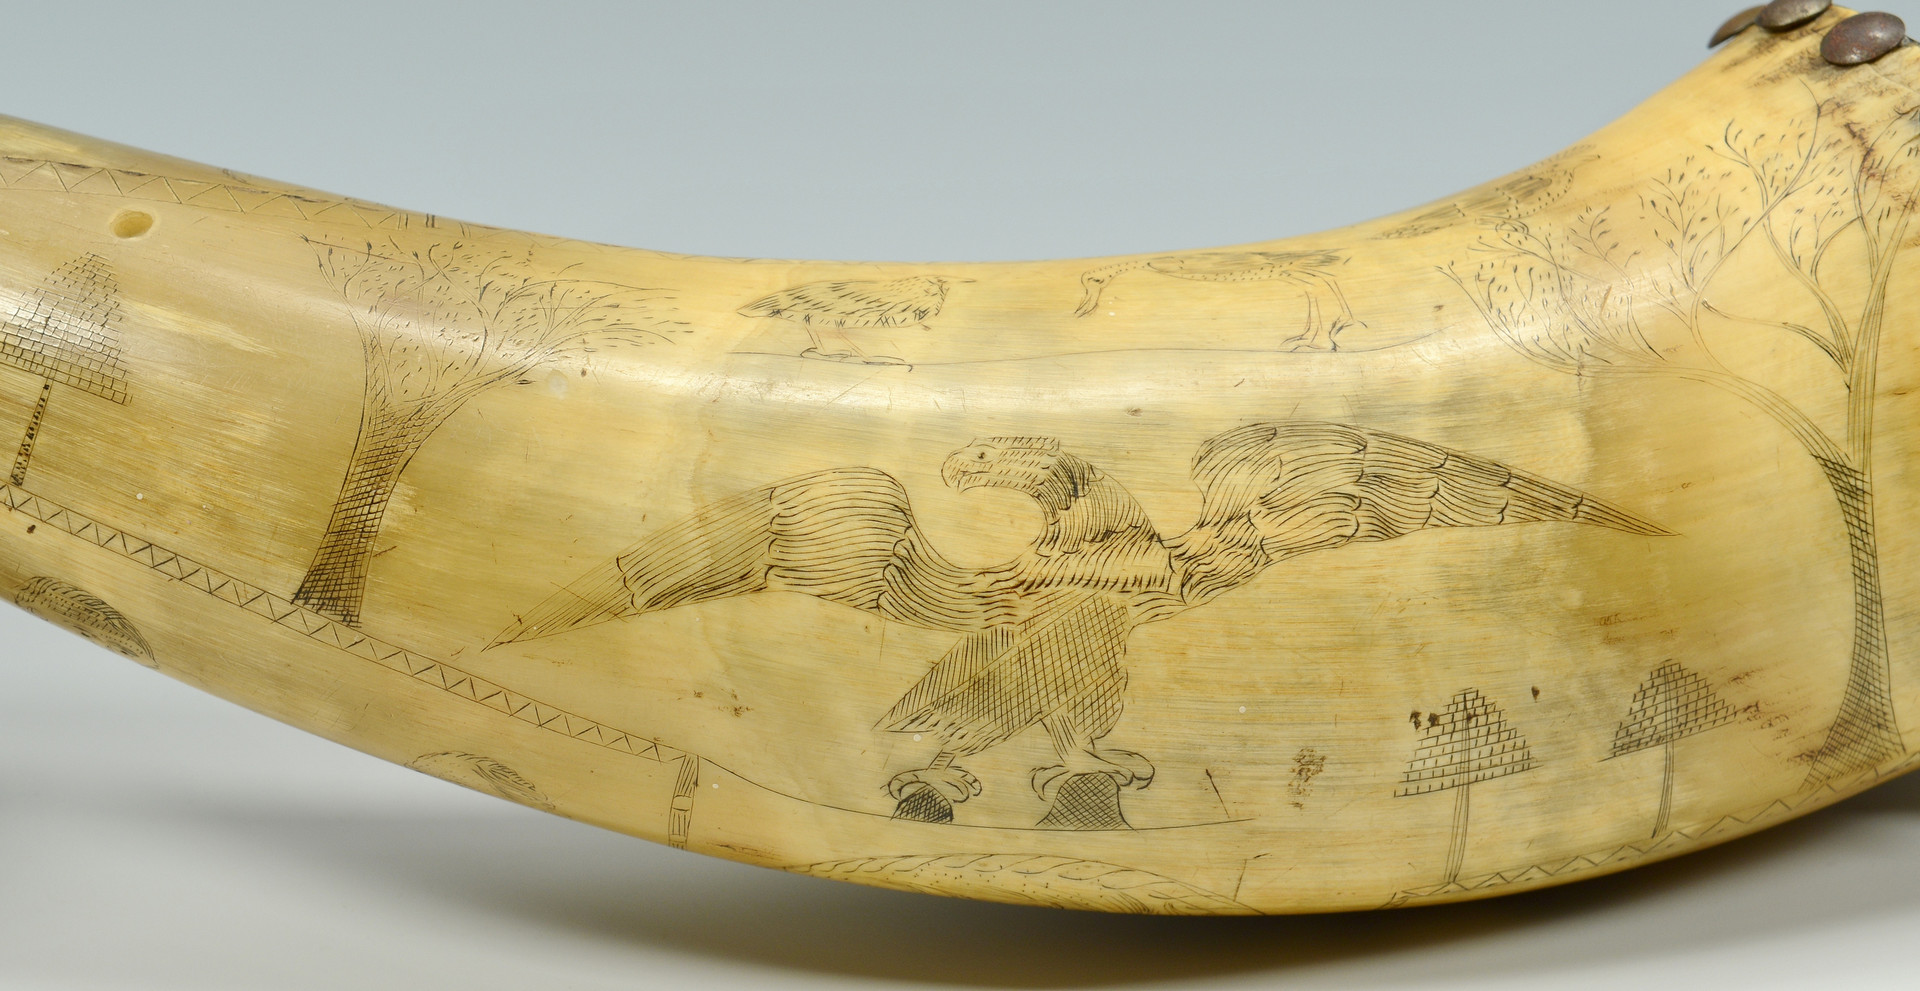 Lot 410: Powder Horn, Pres. Harrison-related designs and ho